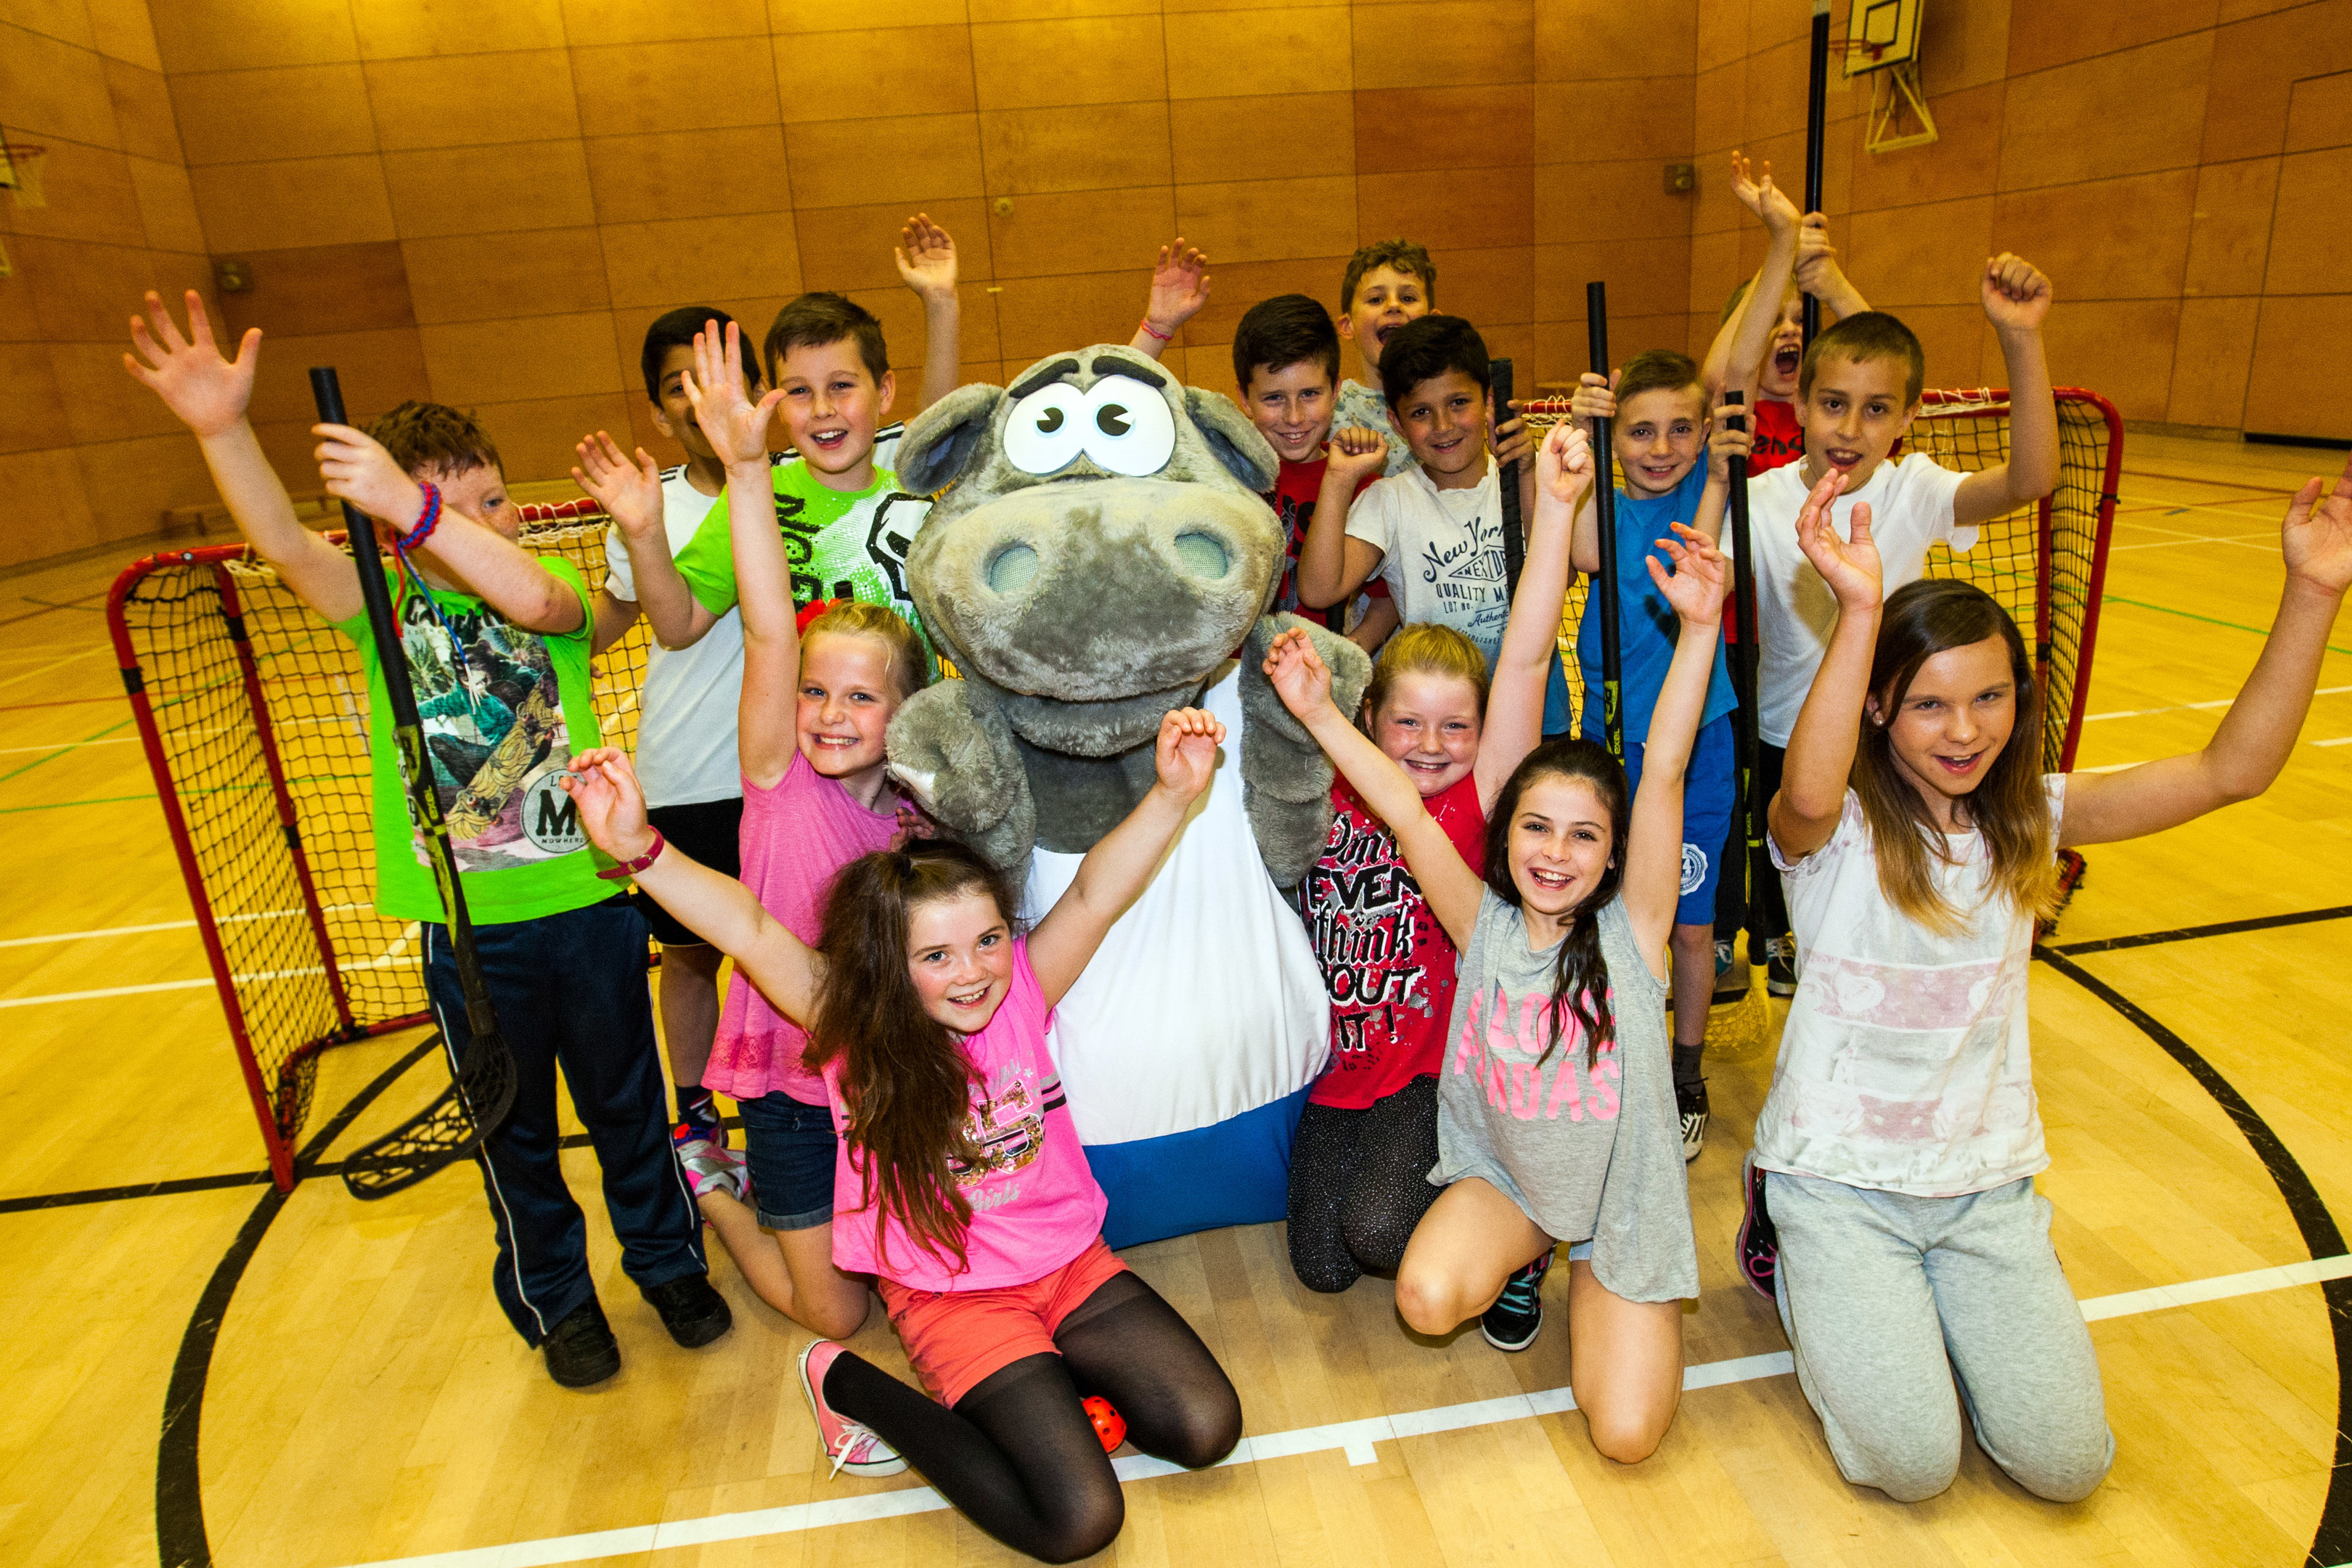 Primary children from Kirkcaldy North Primary School were trying out their hockey skills alongside mascot 'Archie' the Hippo on the 2nd anniversary of Kirkcaldy Leisure Centre's opening. But the sports hall has now come under the spotlight over the choice of flooring chosen.